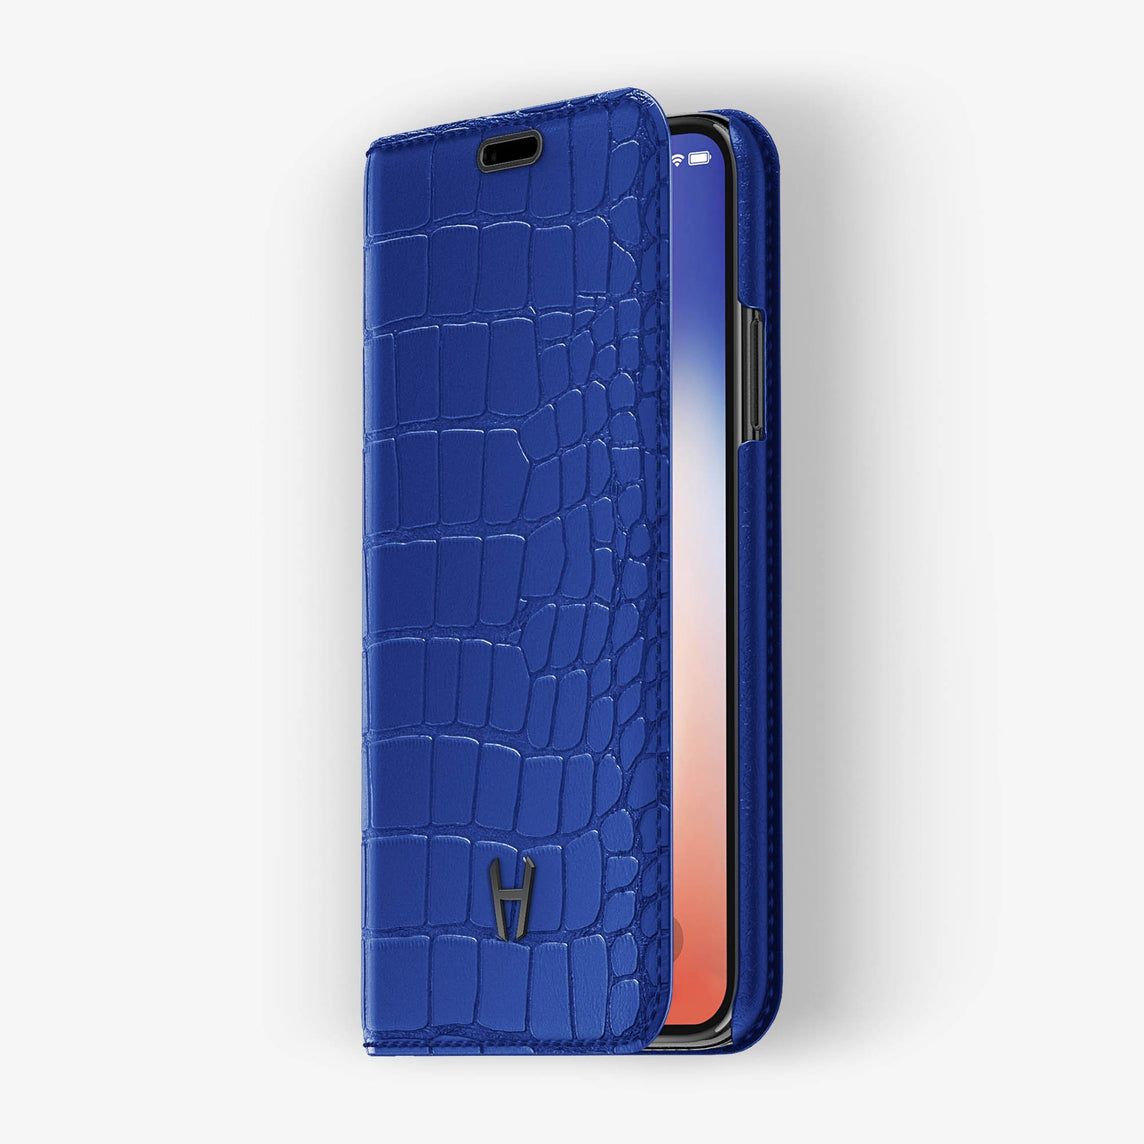 Peony Blue Alligator iPhone Folio Case for iPhone X finishing black - Hadoro Luxury Cases